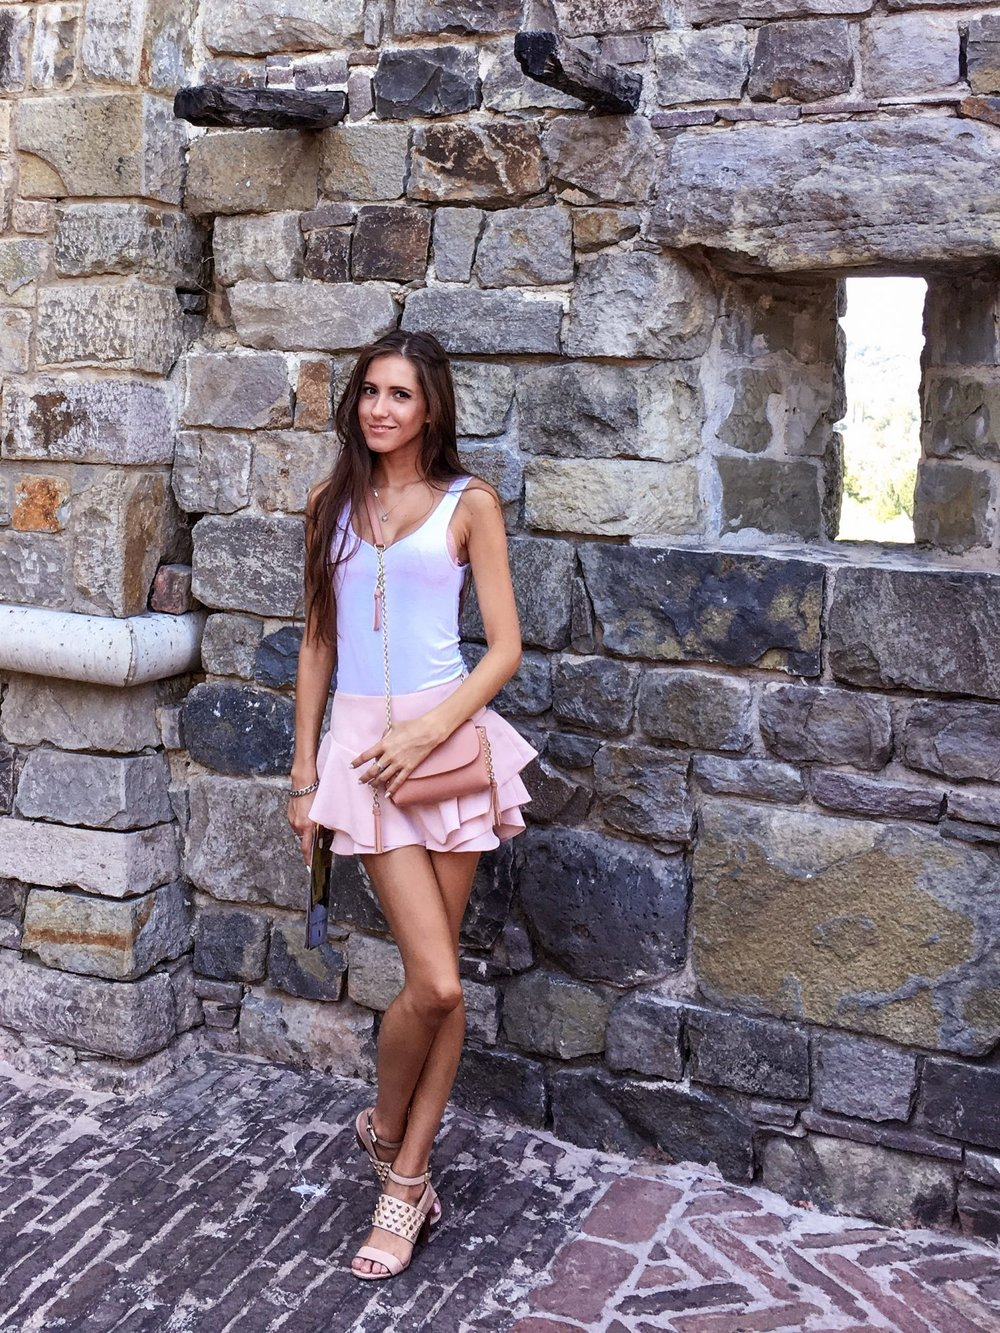 The-Hungarian-Brunette-What-I-wear-in-real-life-1-of-1.jpg